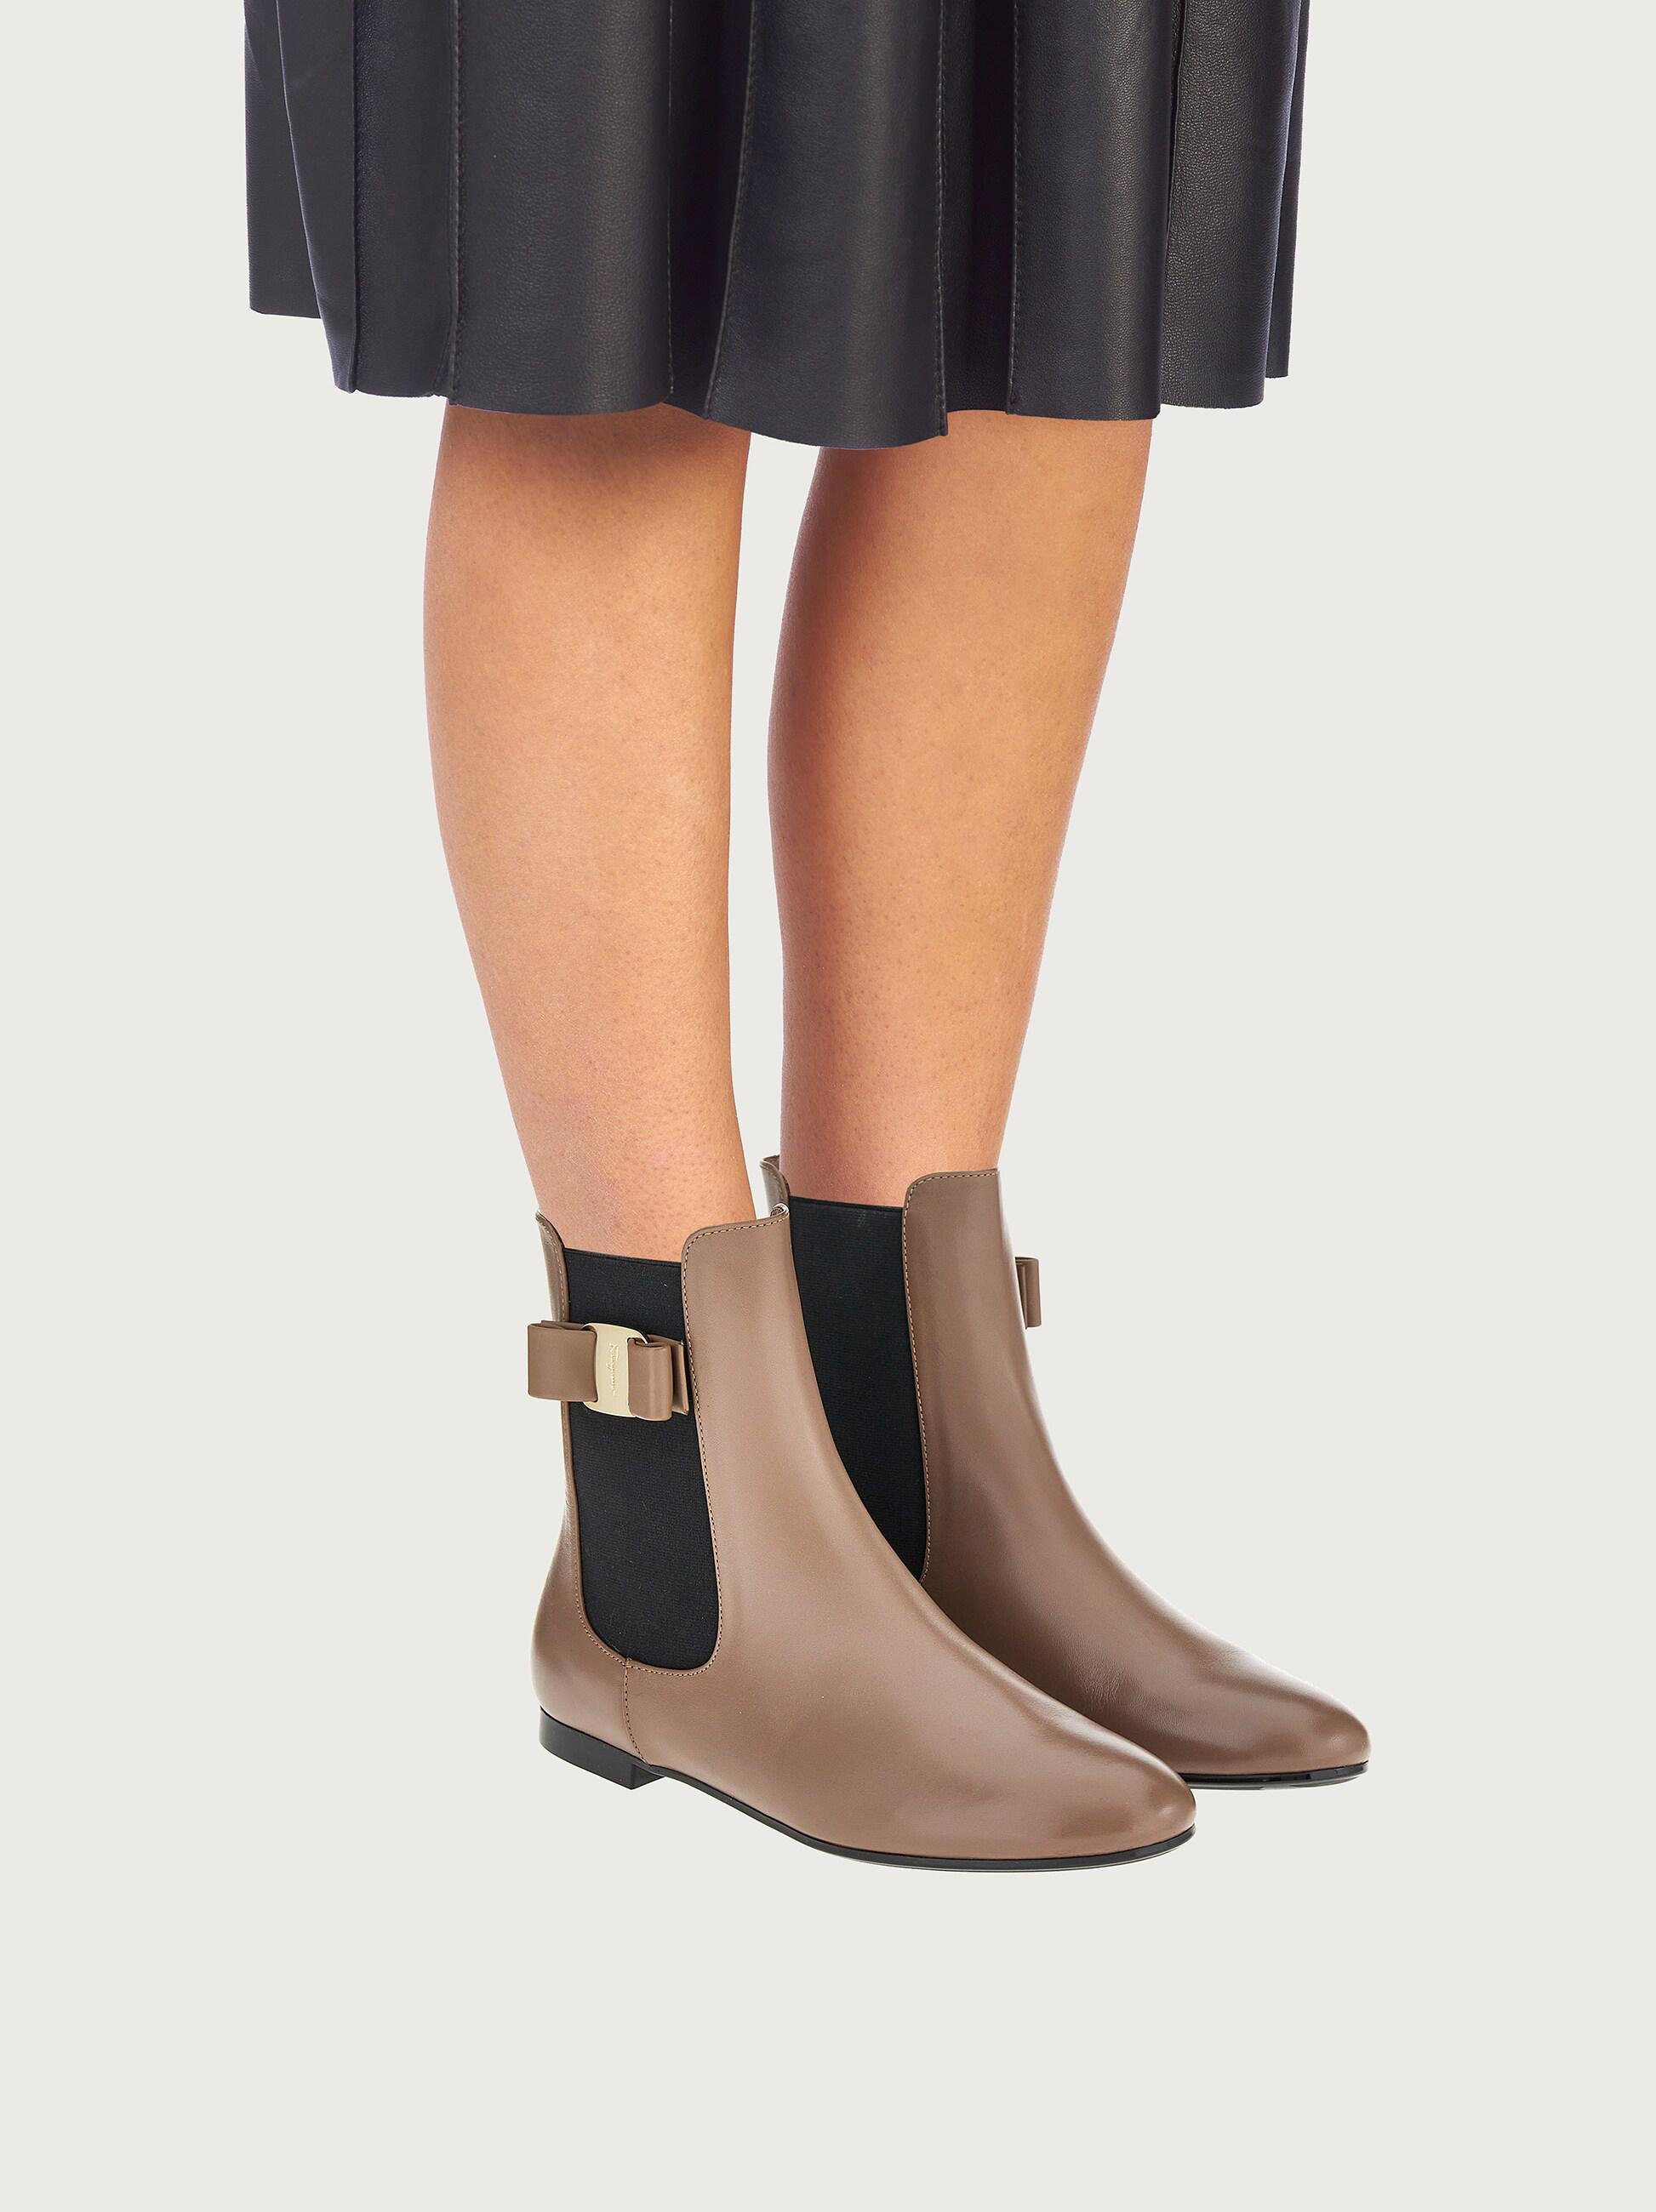 CHELSEA BOOT WITH VARA BOW 4